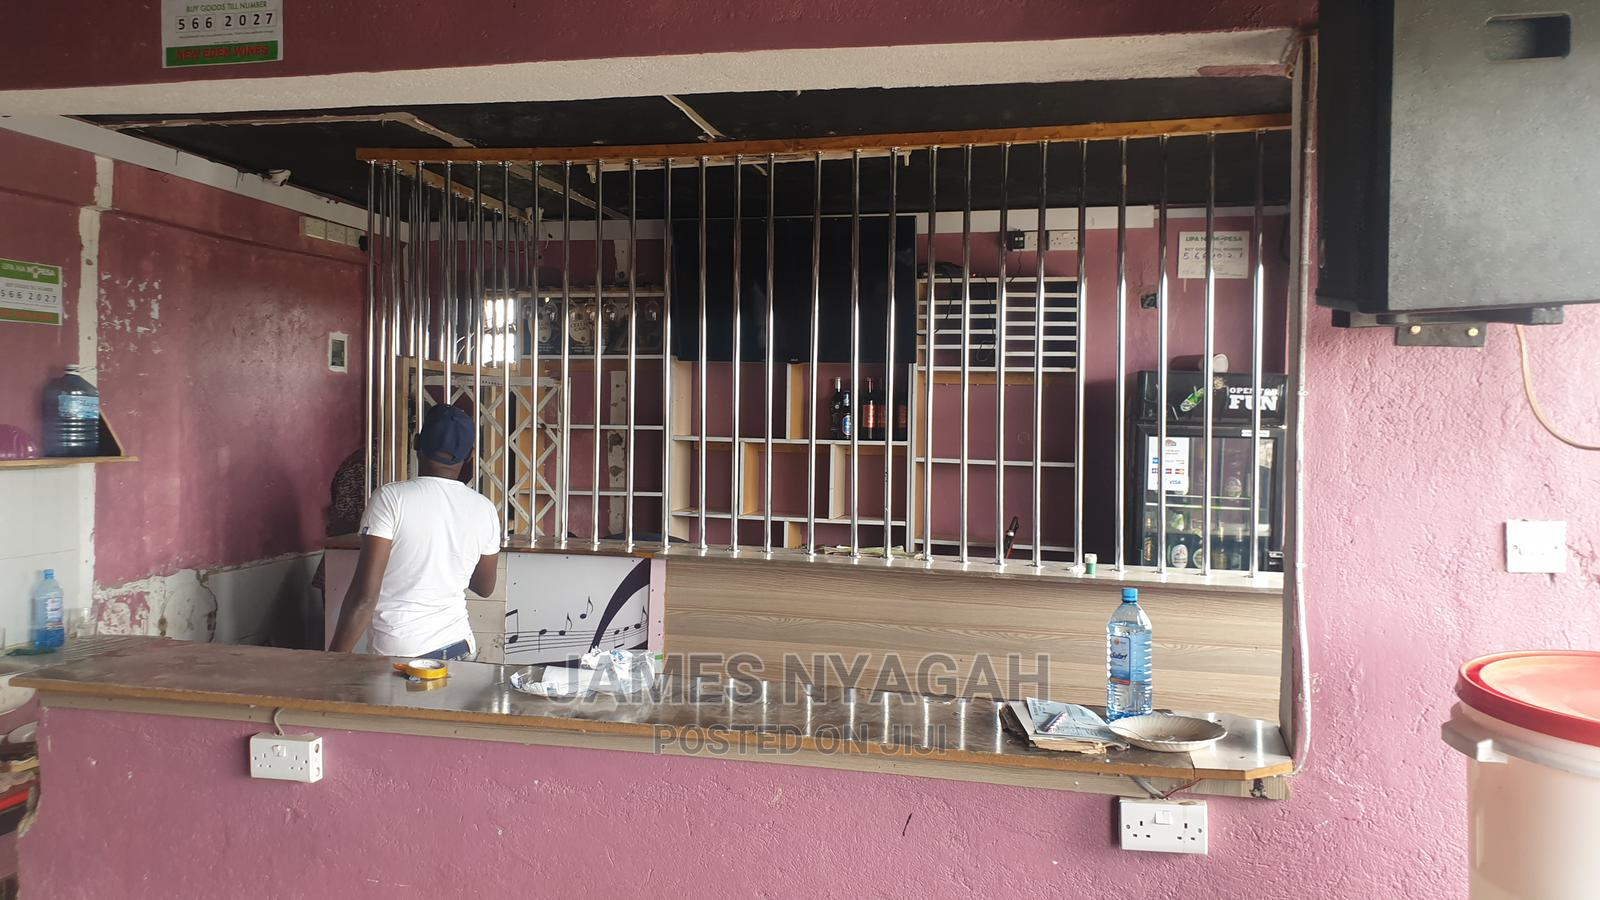 Archive: Spacious Club Space for Rent